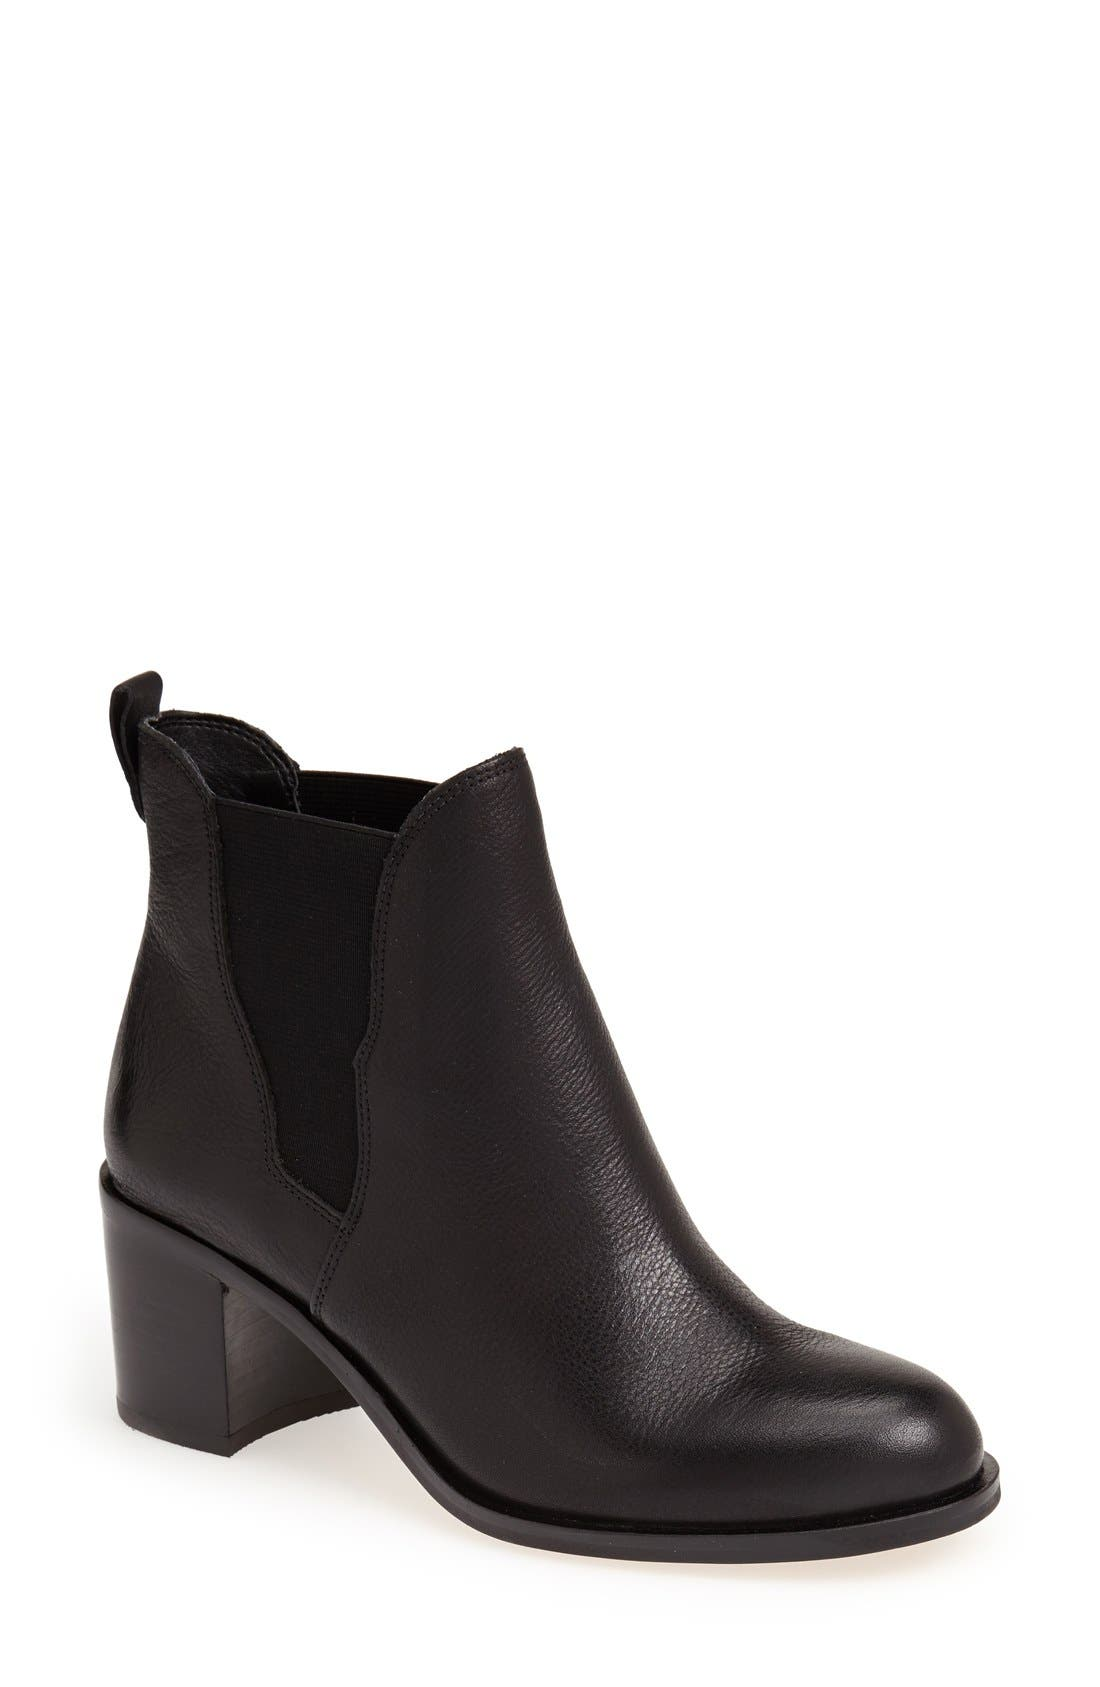 Main Image - Sam Edelman 'Justin' Leather Bootie (Women)